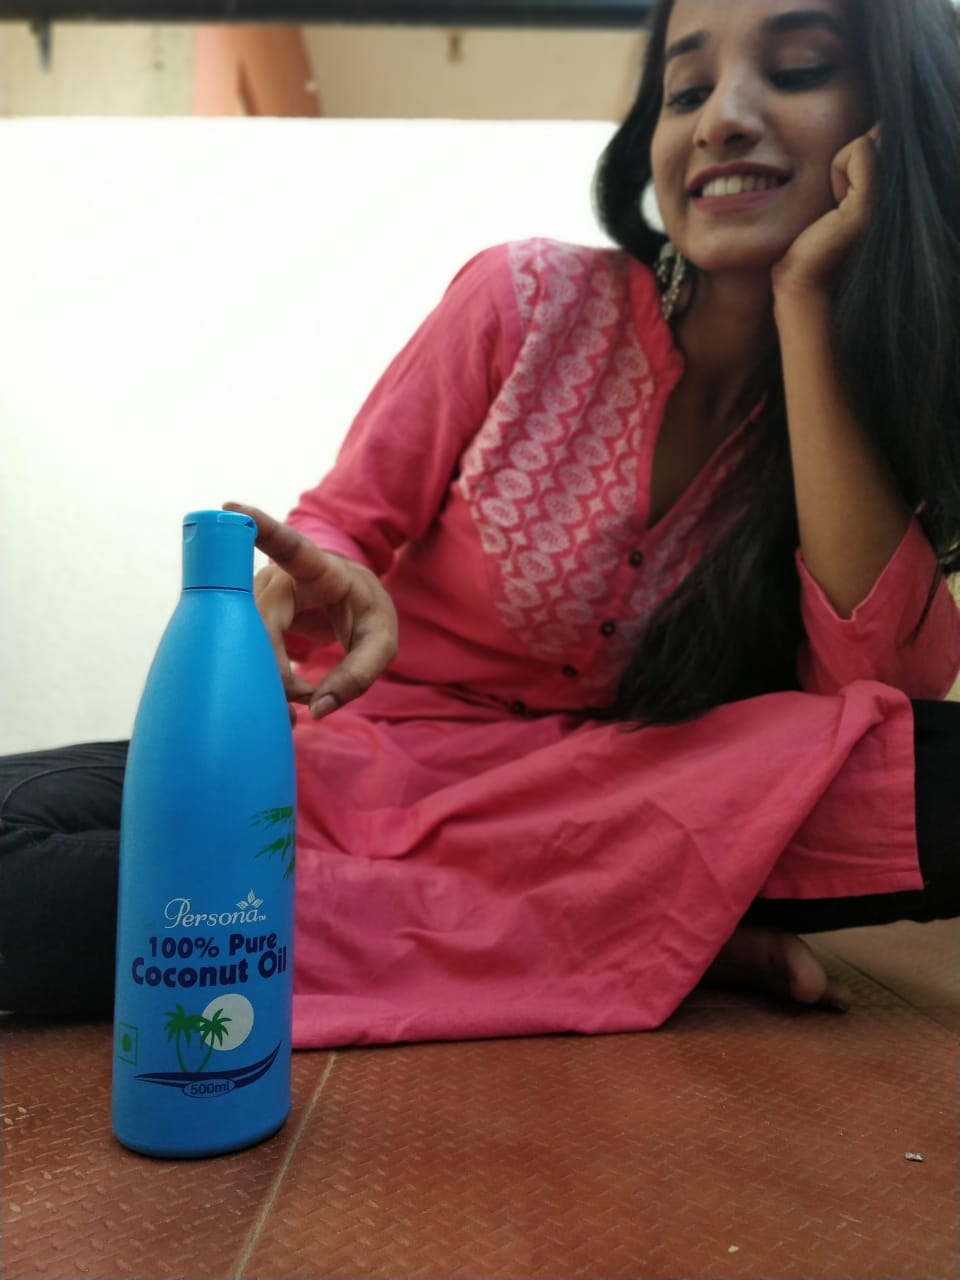 Amway Persona 100% Pure Coconut Oil -Amway persona coconut oil-By nidhiprakash12